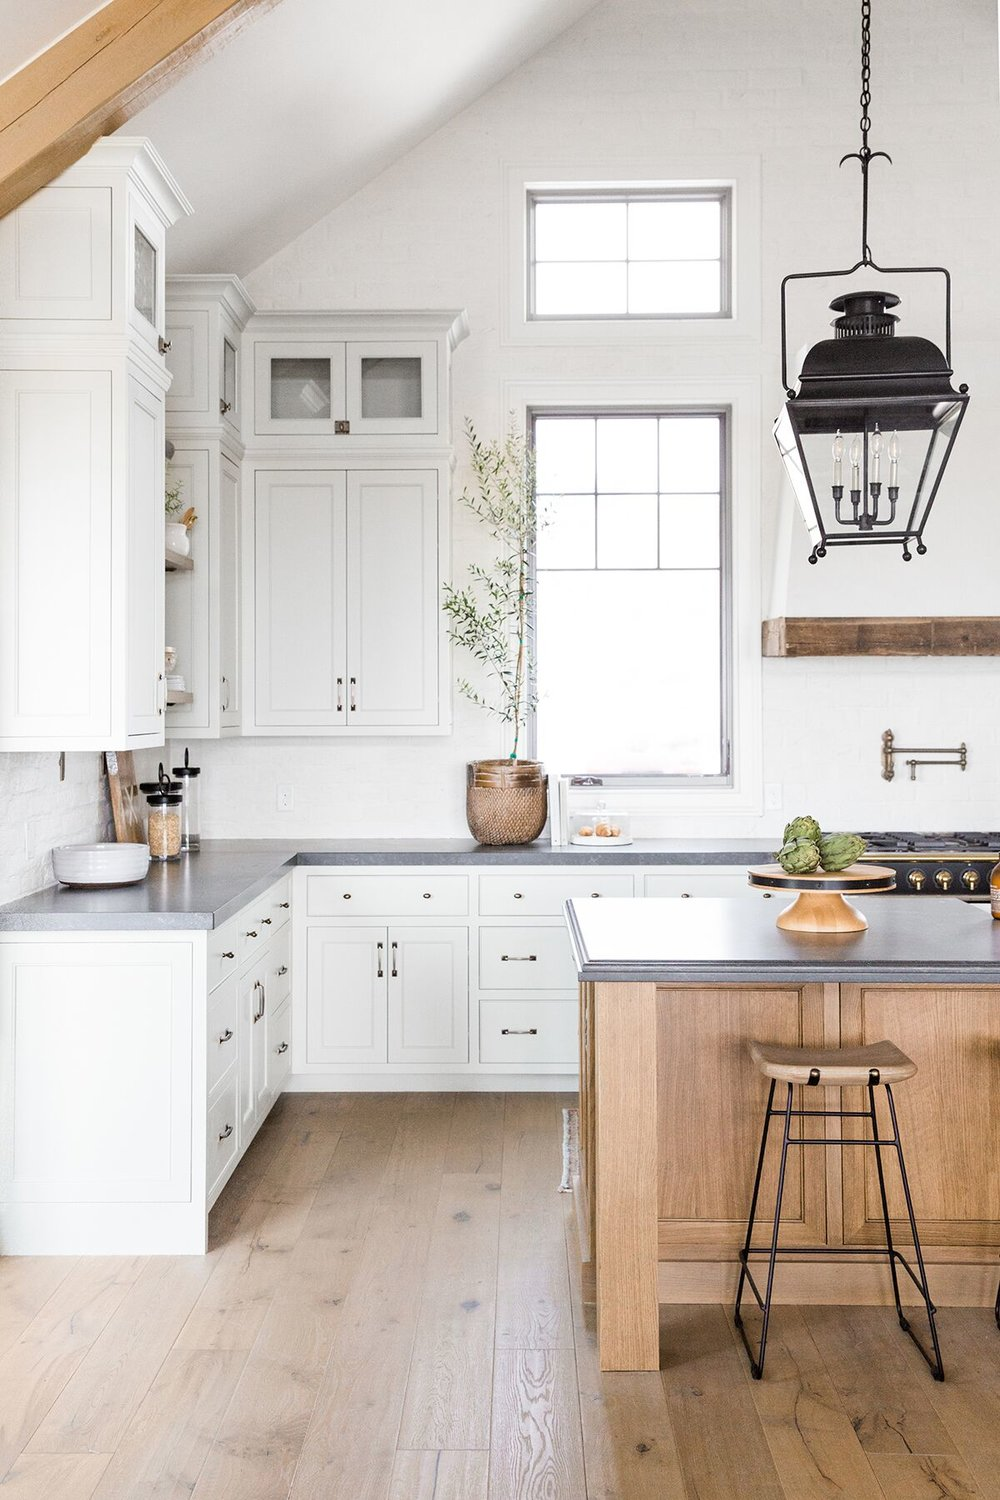 Refined,+rustic+kitchen+with+exposed+wooden+beams,+hanging+lanterns,+painted+white+brick,+oven+range+in+mountain+home+-+Studio+McGee+Design-3.jpg